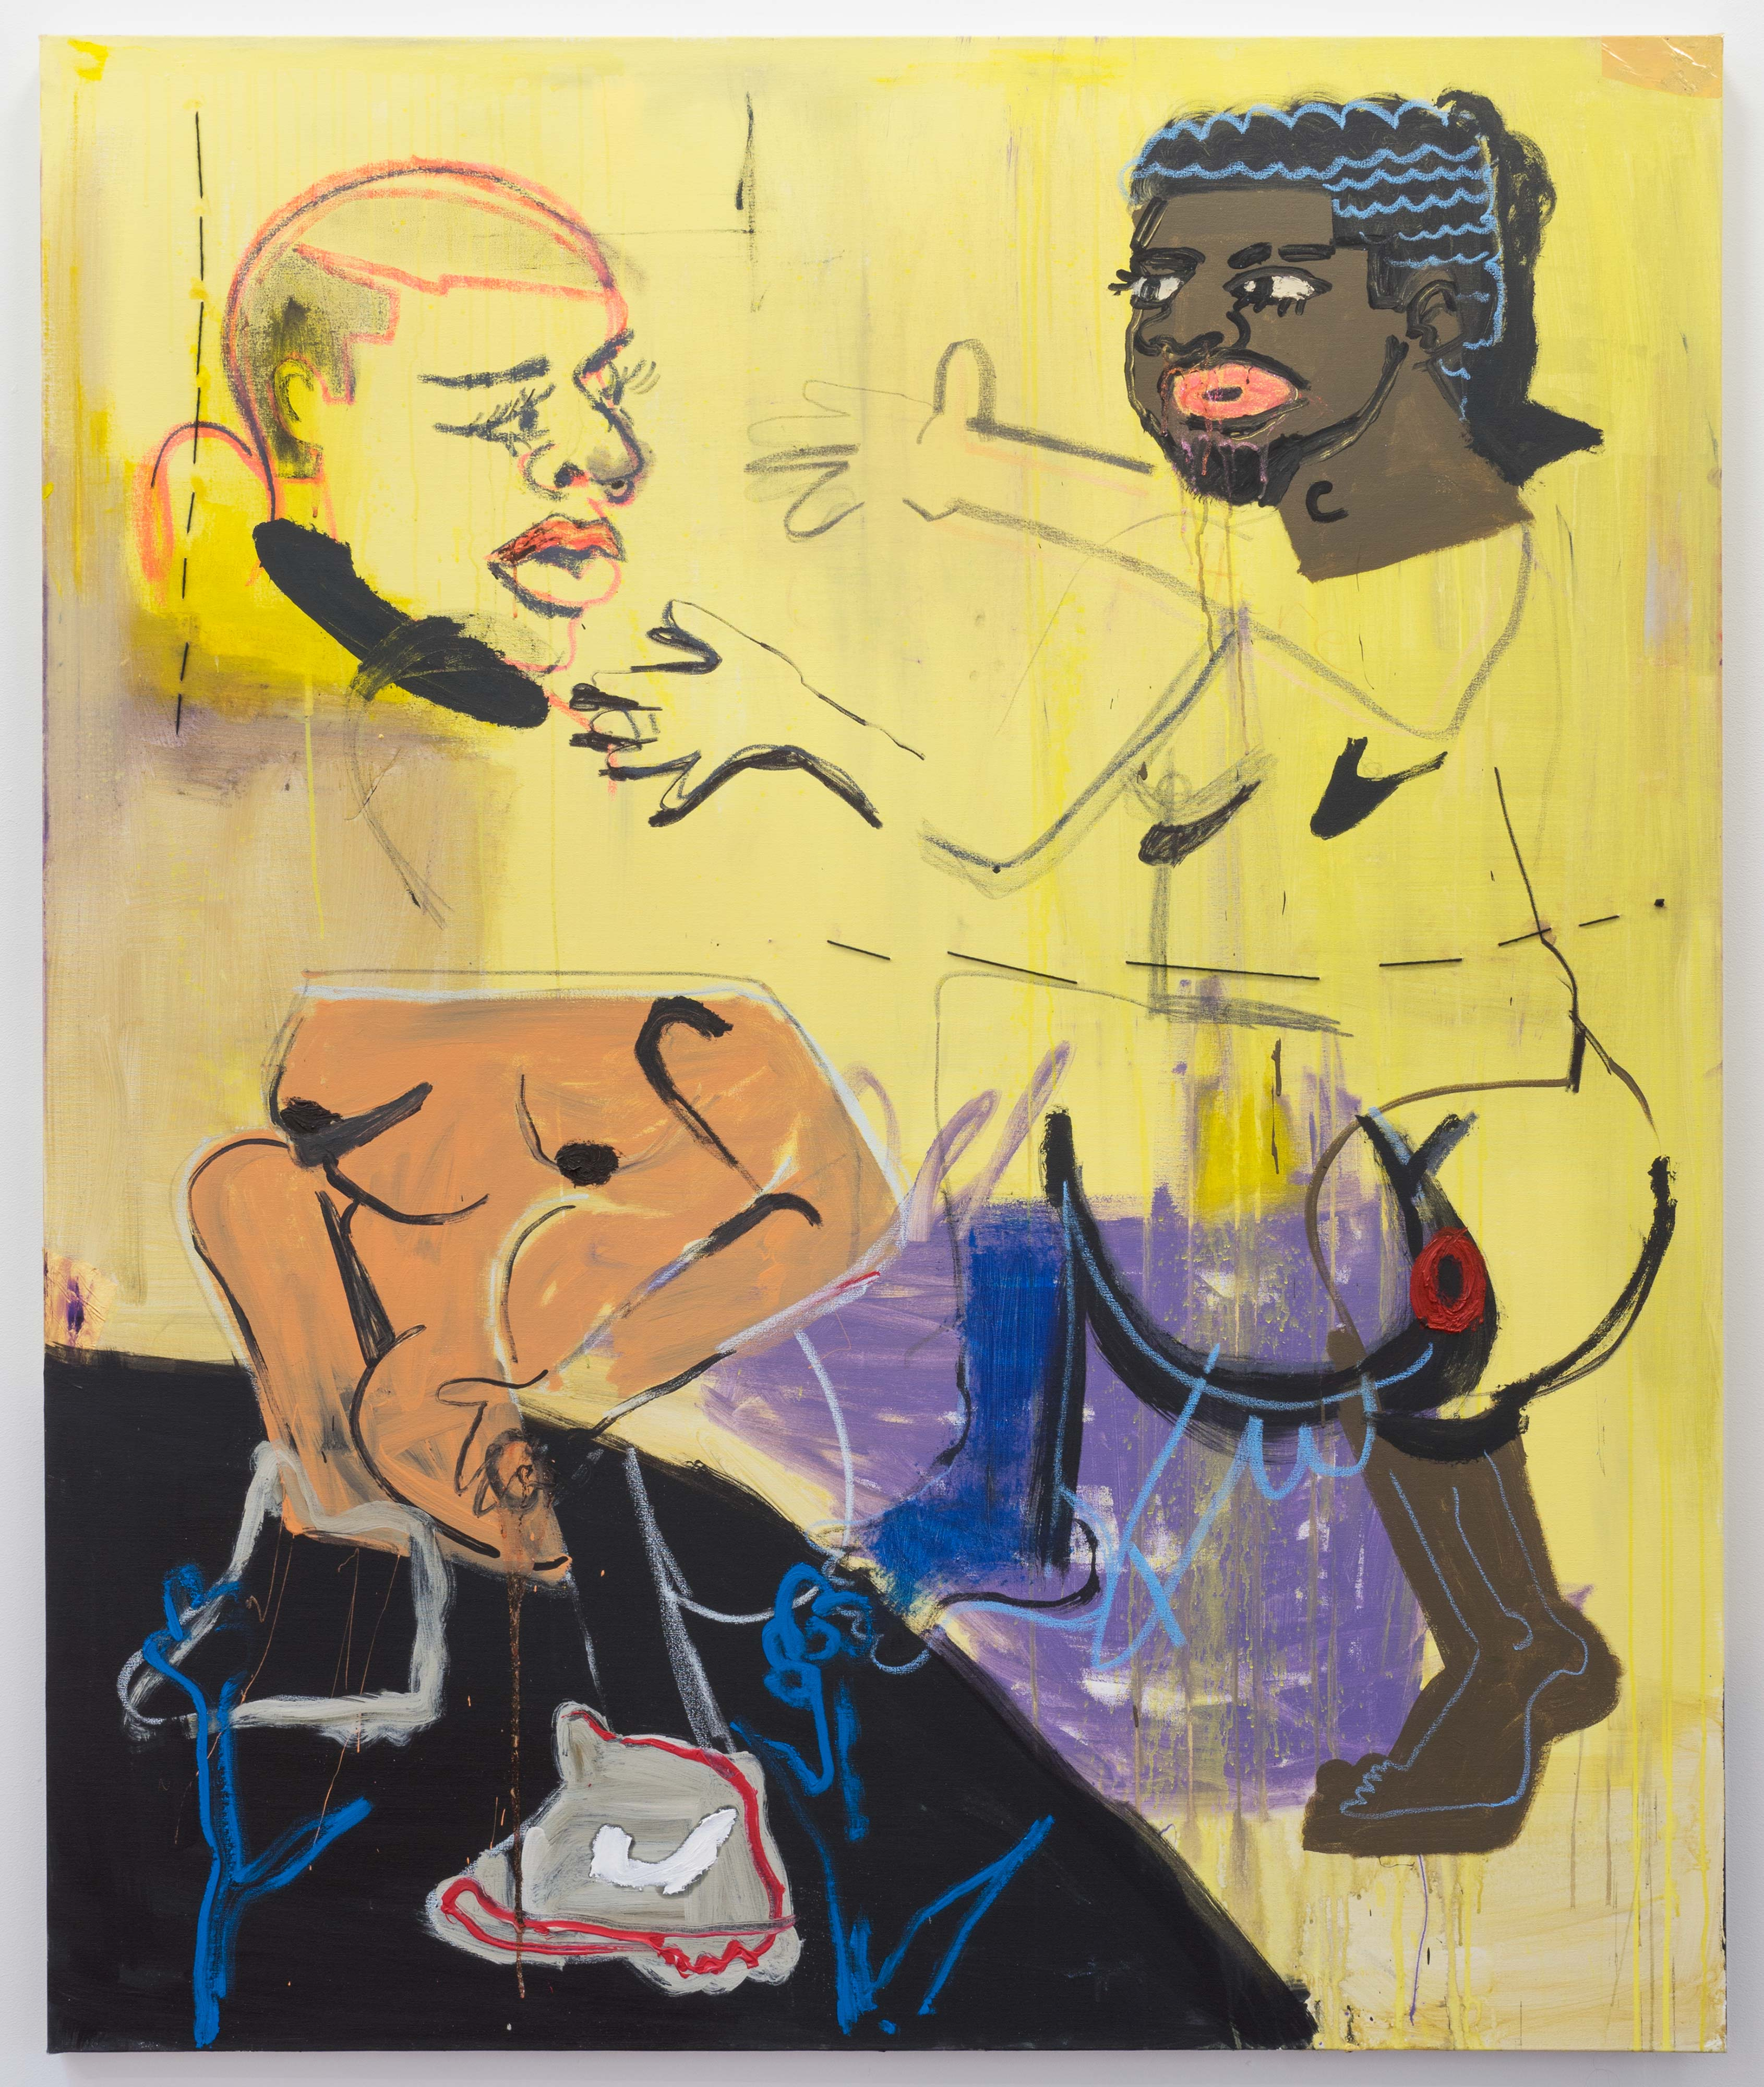 Jonathan Lyndon Chase<br>Here<br>2016<br>acrylic on canvas<br>72 x 60 in (182.88 x 152.4 cm)